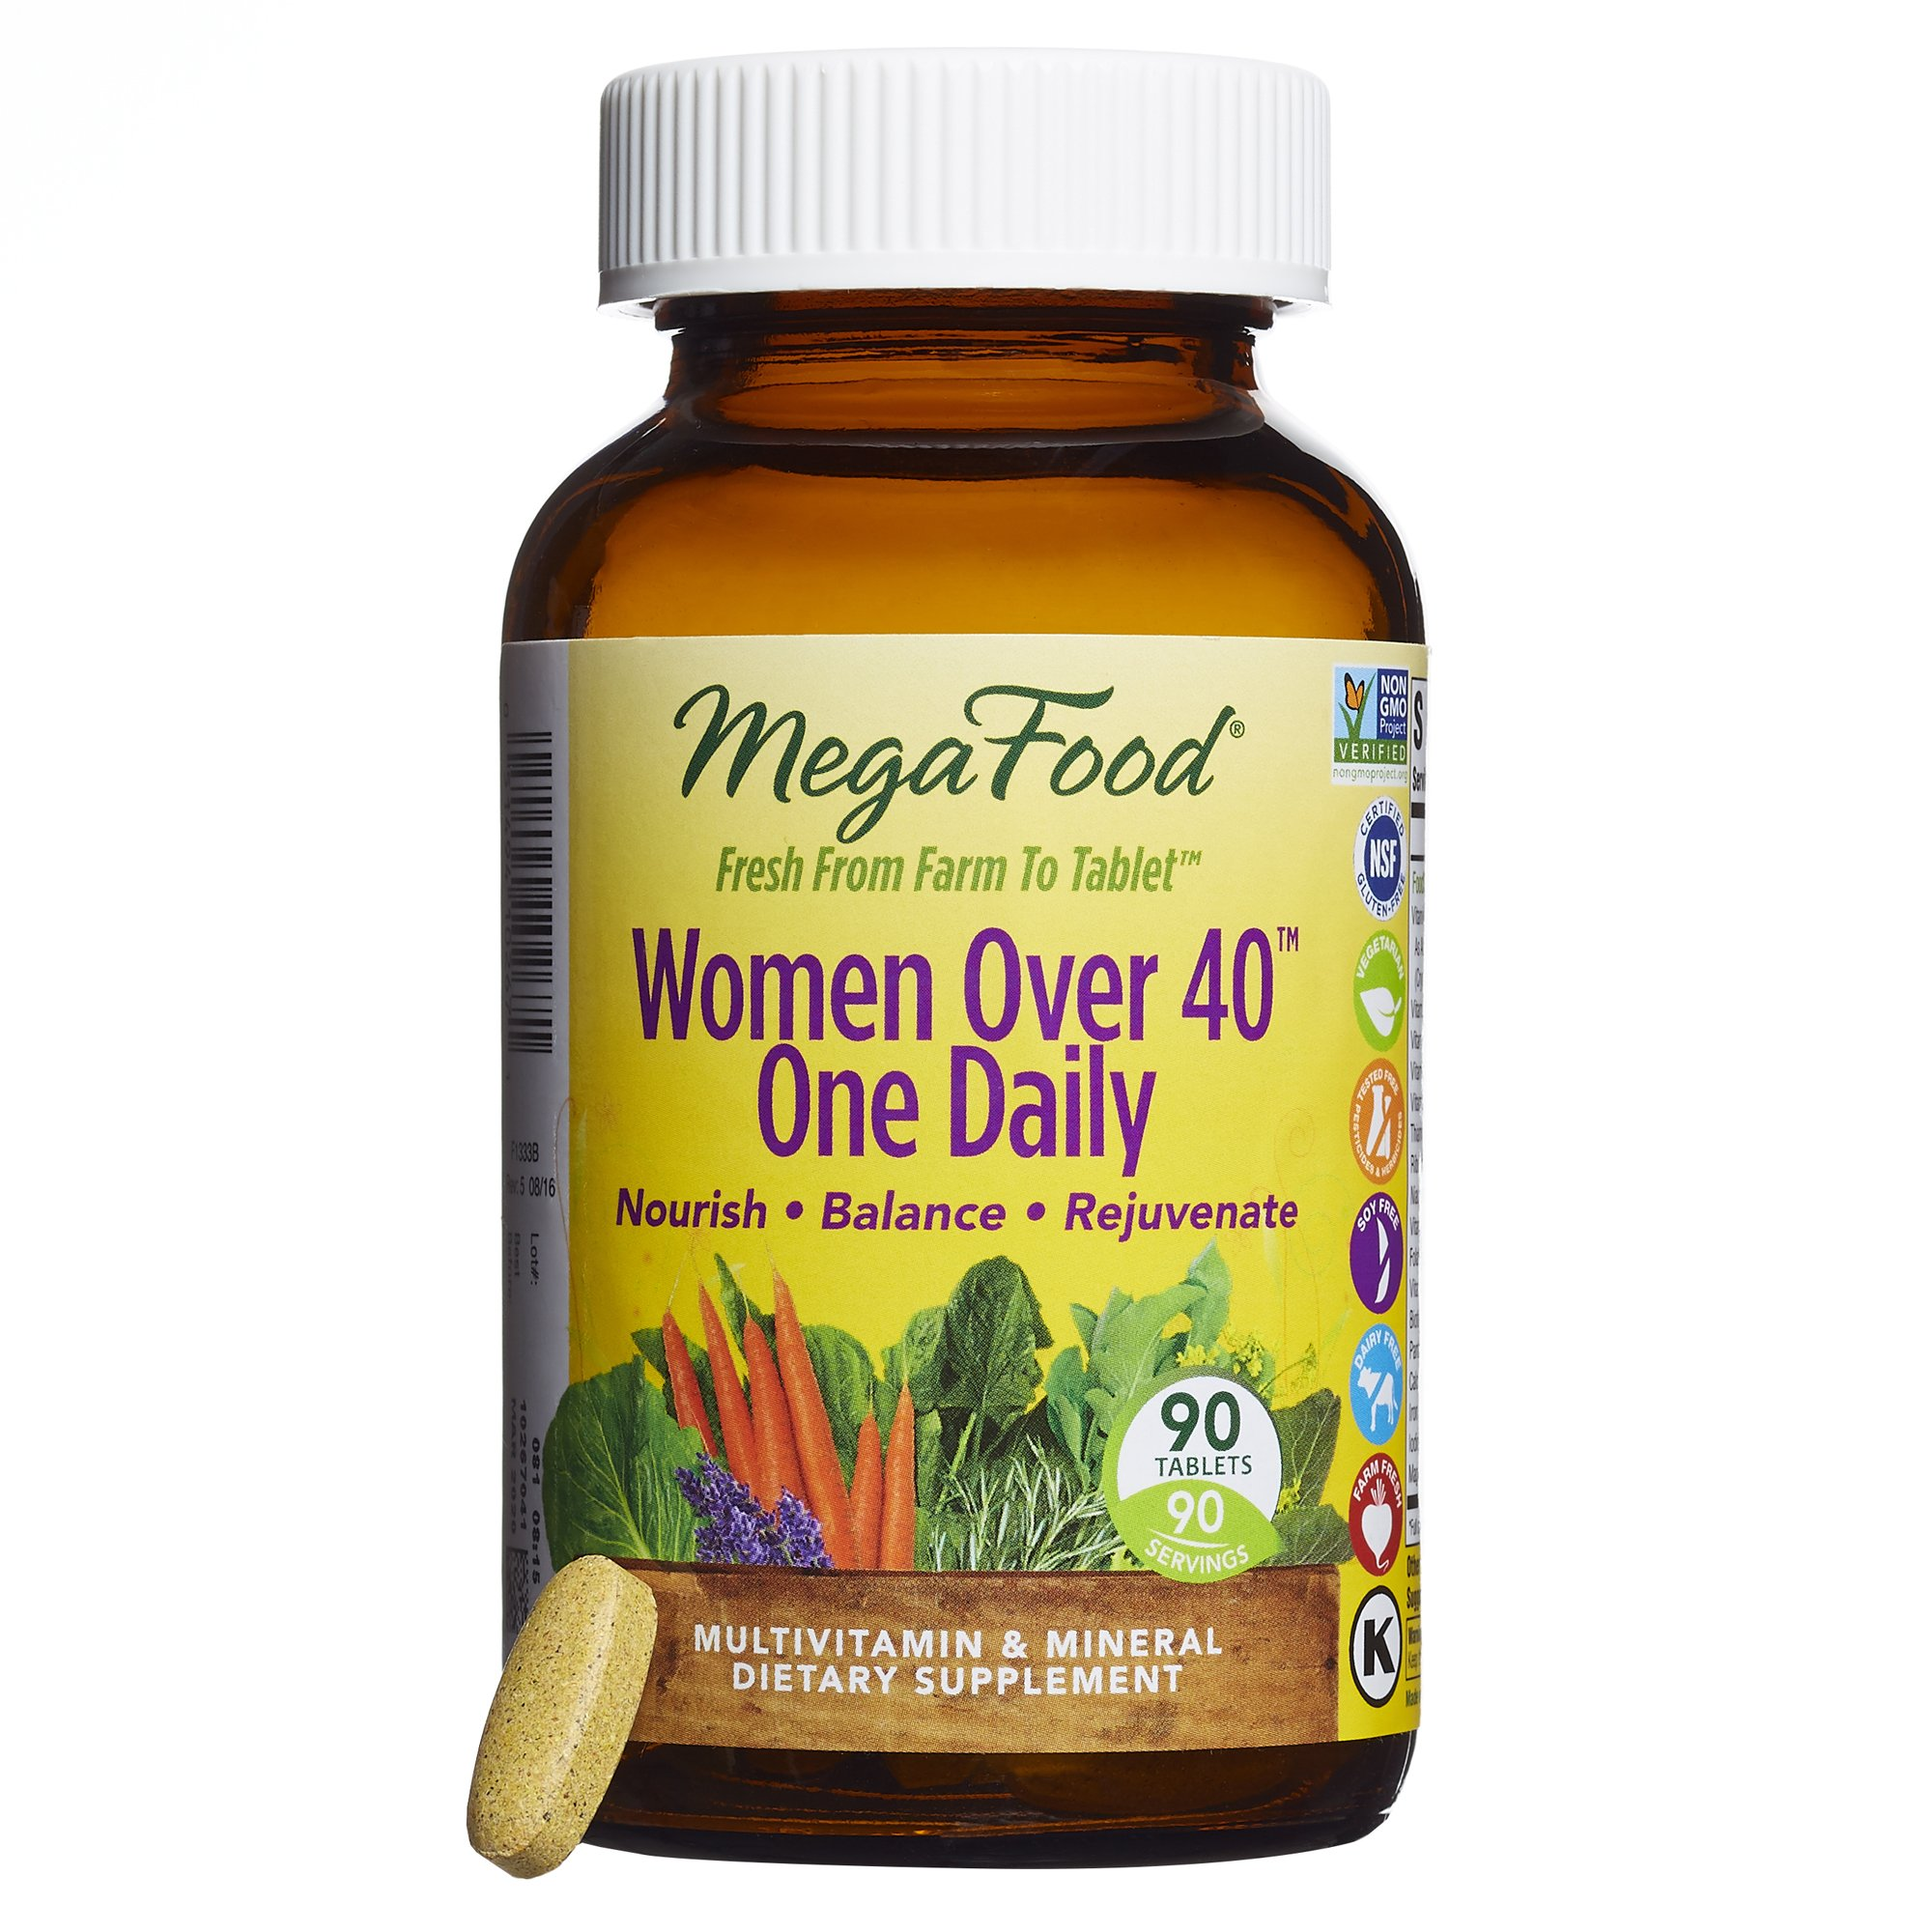 MegaFood - Women Over 40 One Daily, Multivitamin to Support Immune Health, 90 Tablets